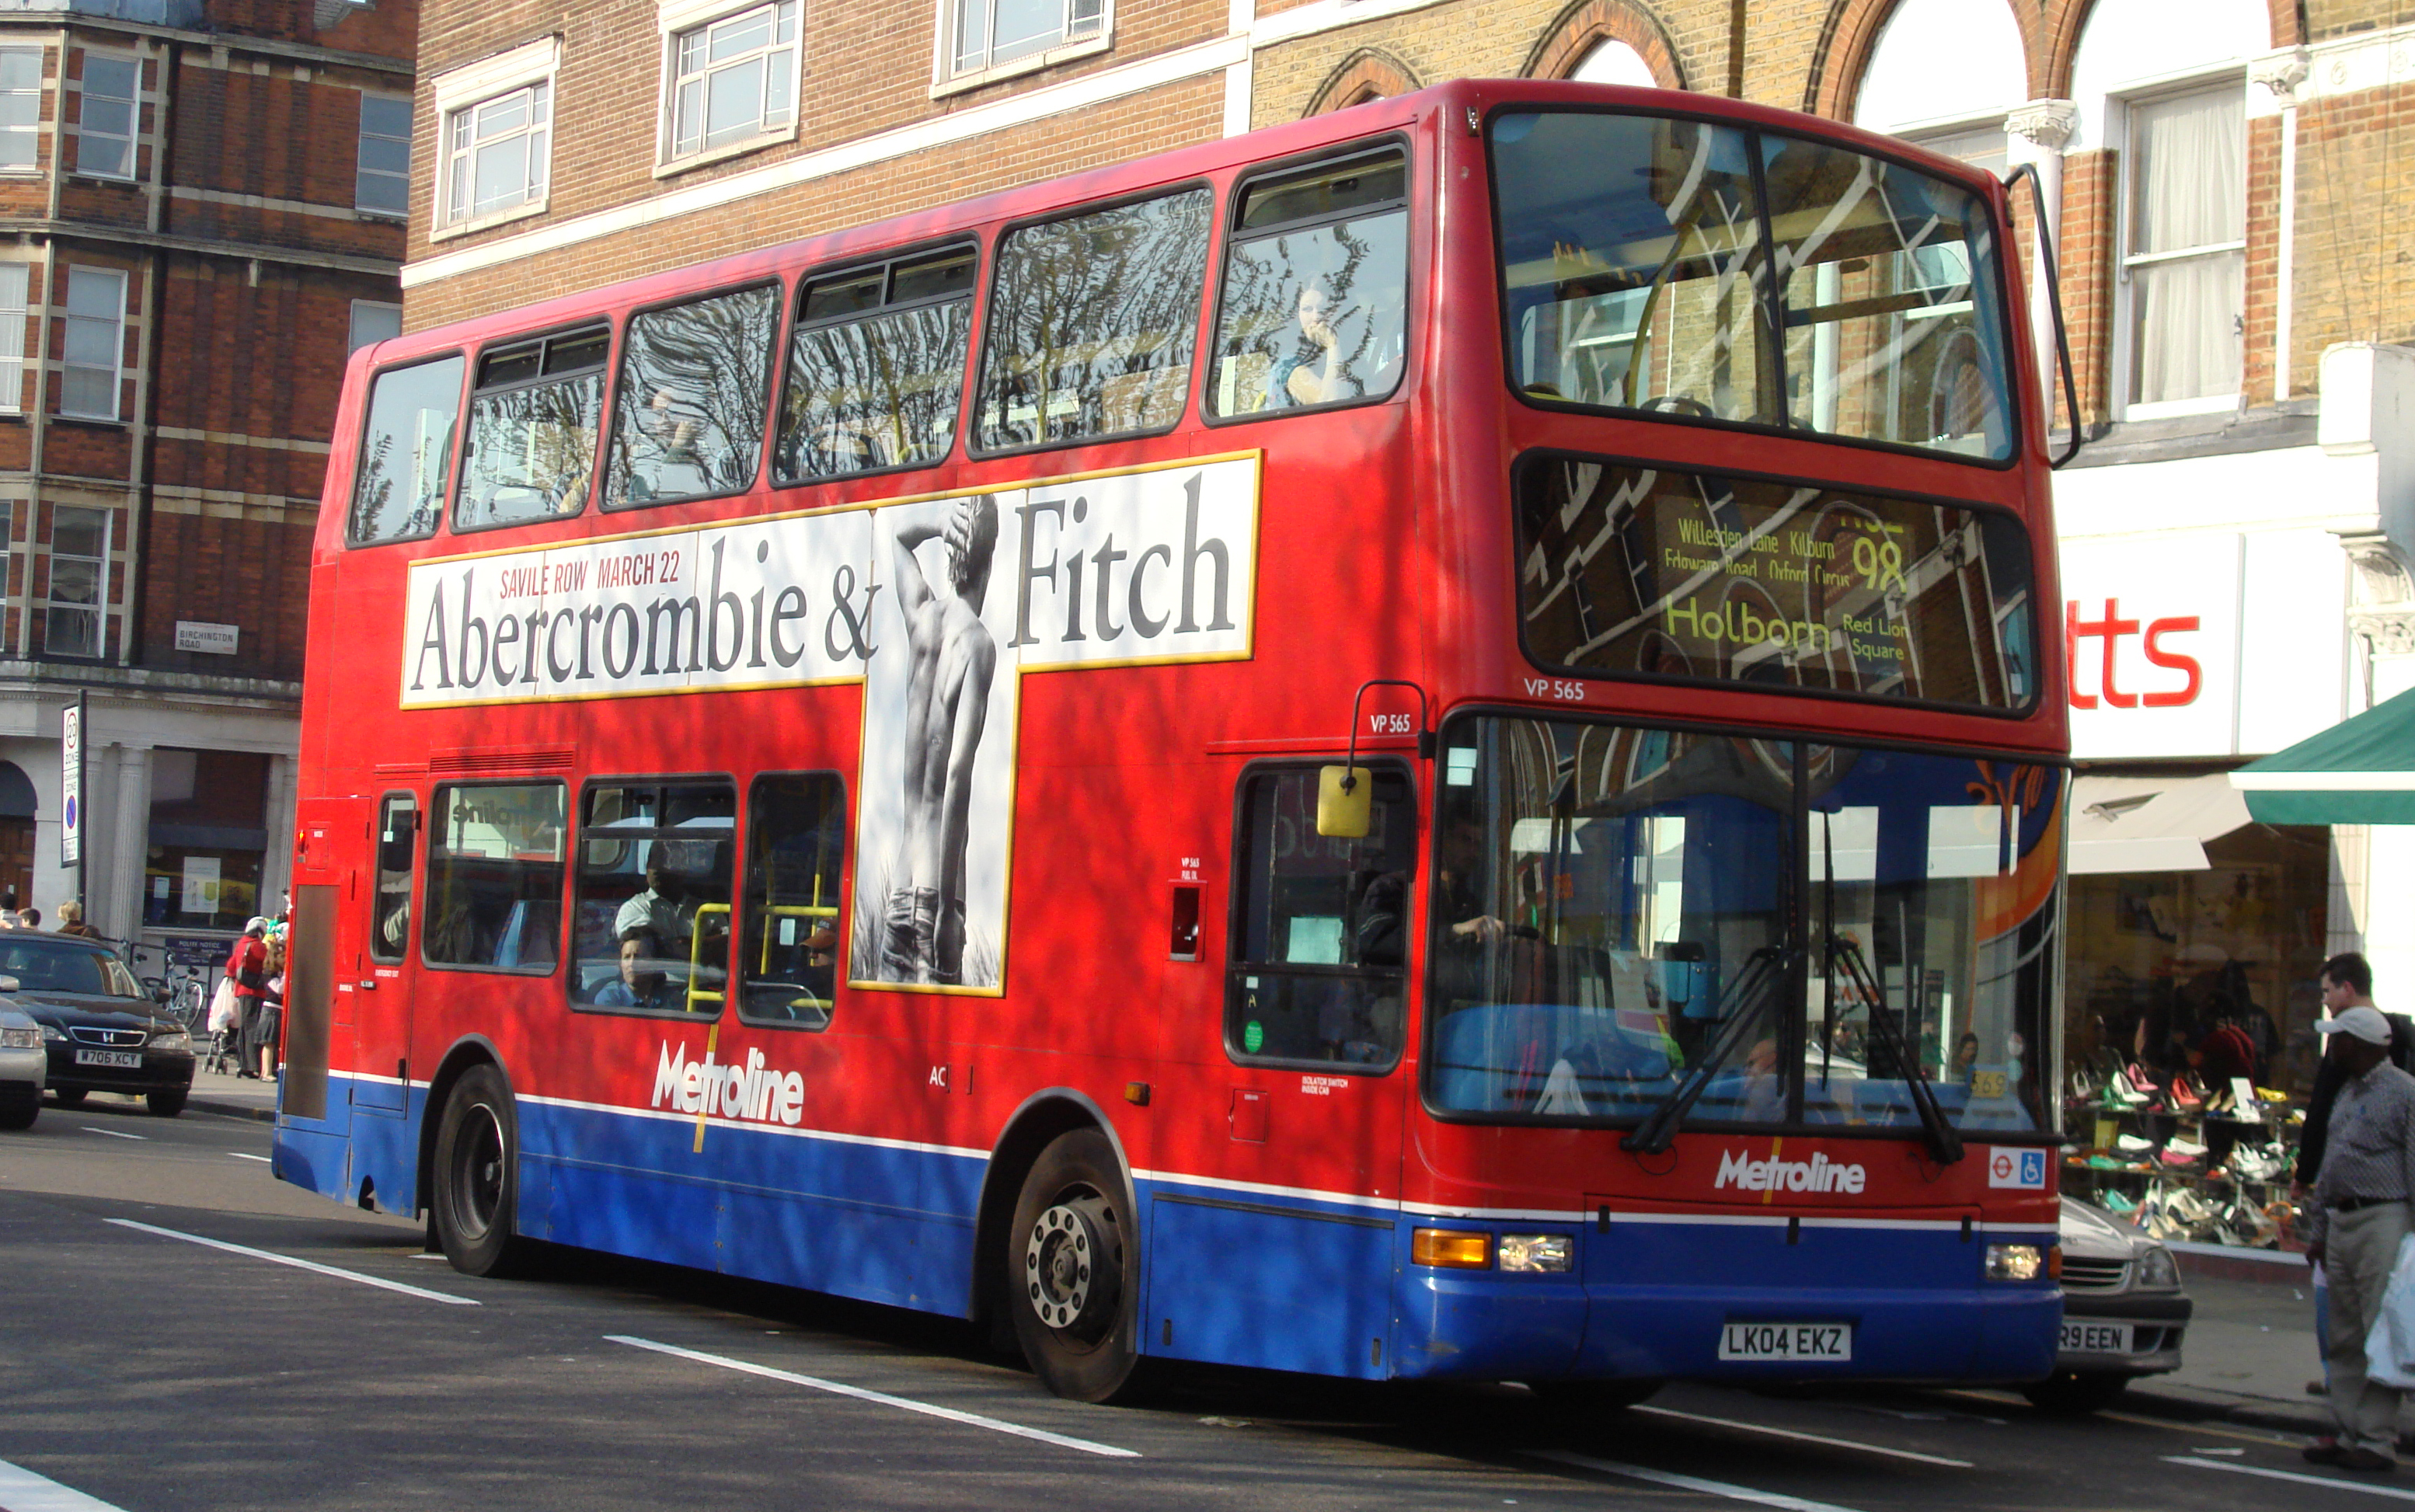 london buses route 98 - wikipedia